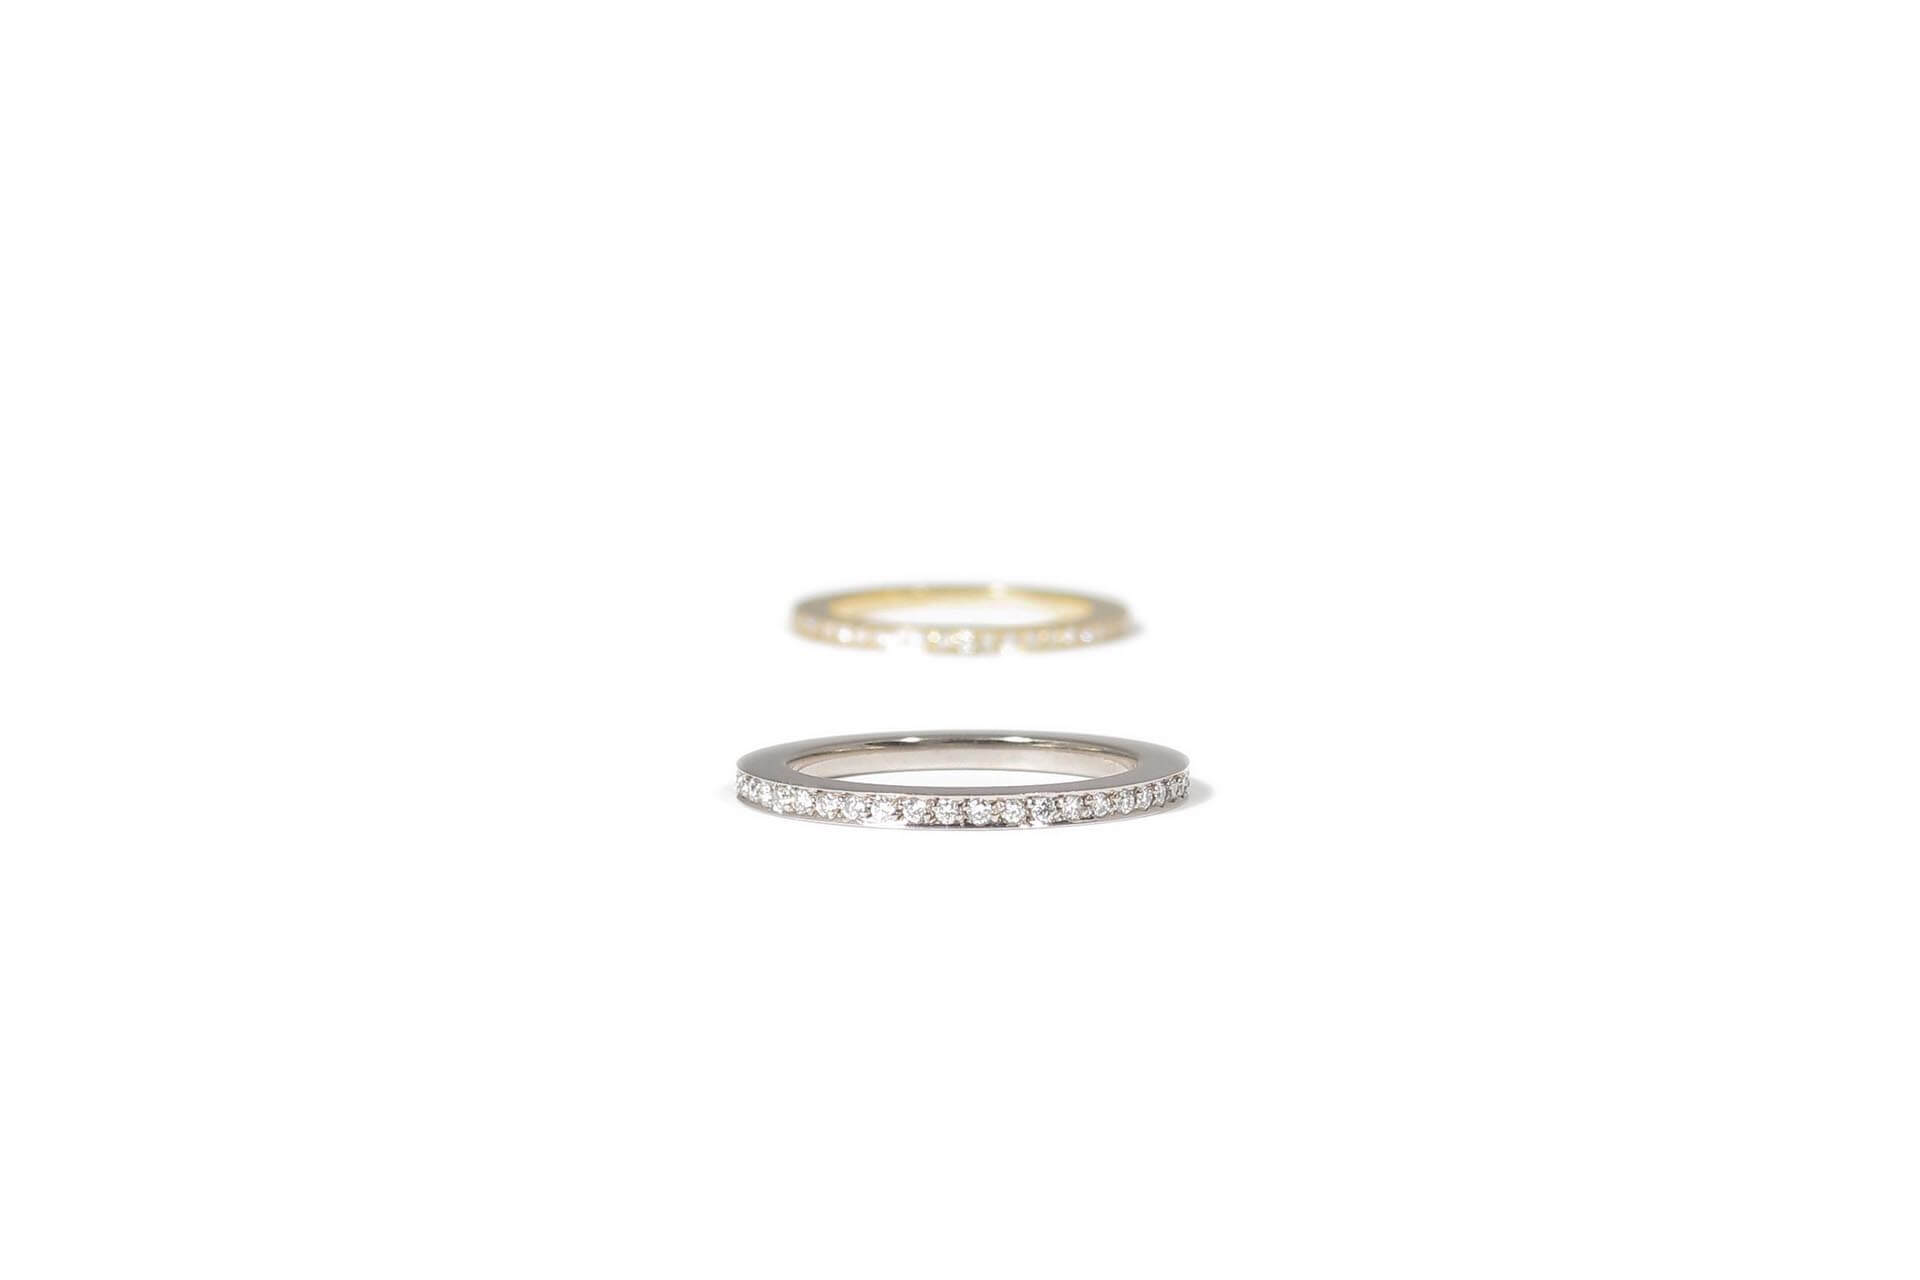 Two eternity gold rings. One in yellow gold and the other in white gold.